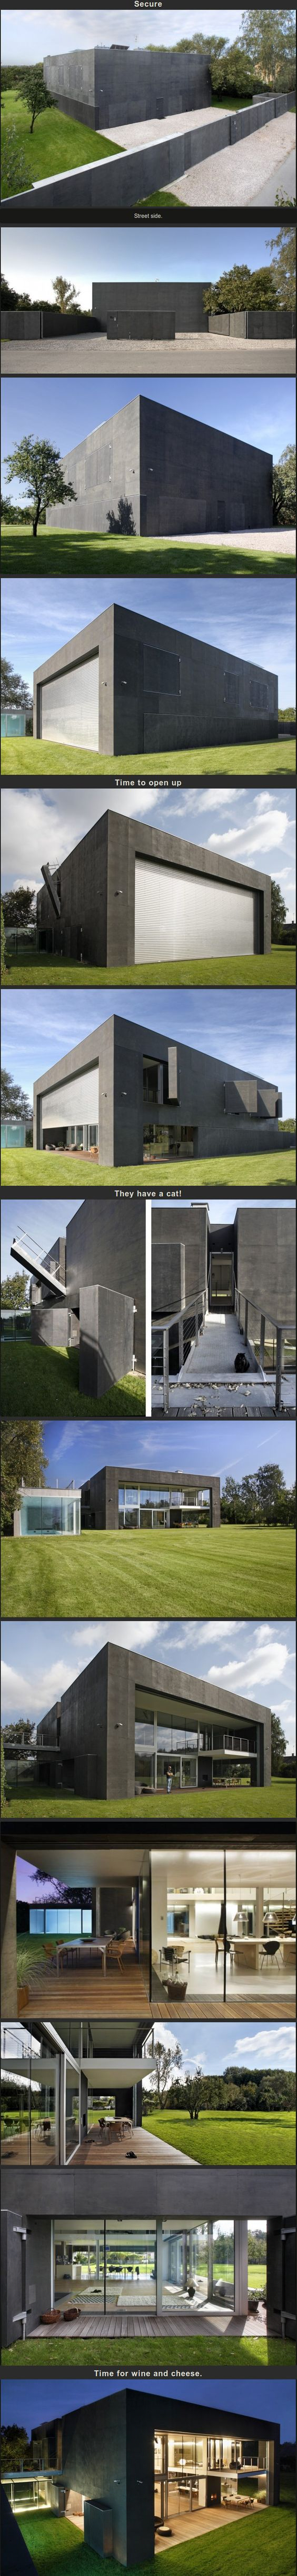 Best house for a zombie apocalypse survival ever #bunkerplans